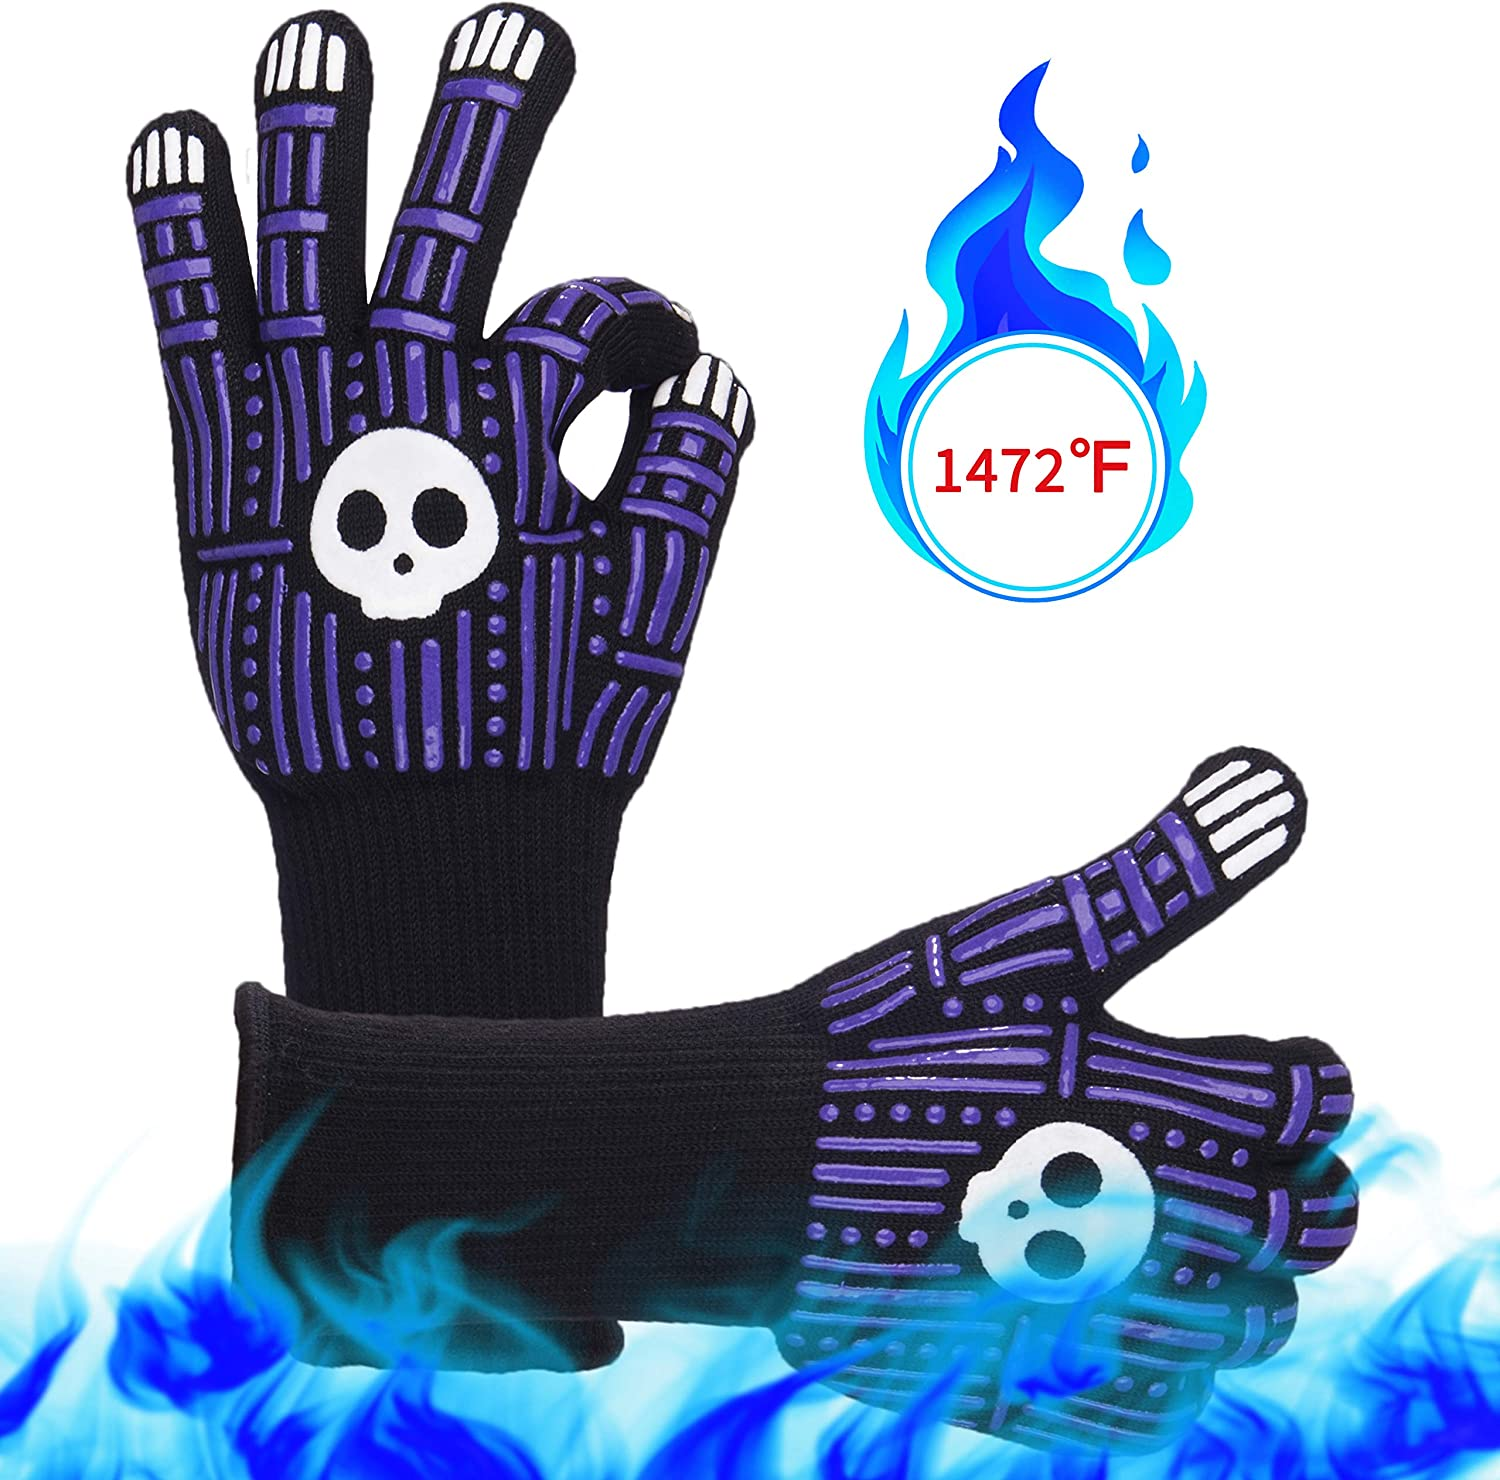 """HOLD ON WAY BBQ Gloves, 1472°F Heat Resistant, Cooking Barbecue Gloves, 13"""" Extreme Kitchen Oven Mitts, Gloves for Grill, Fireproof, Silicone Non-Slip, Baking, 1 Pair (Purple)"""